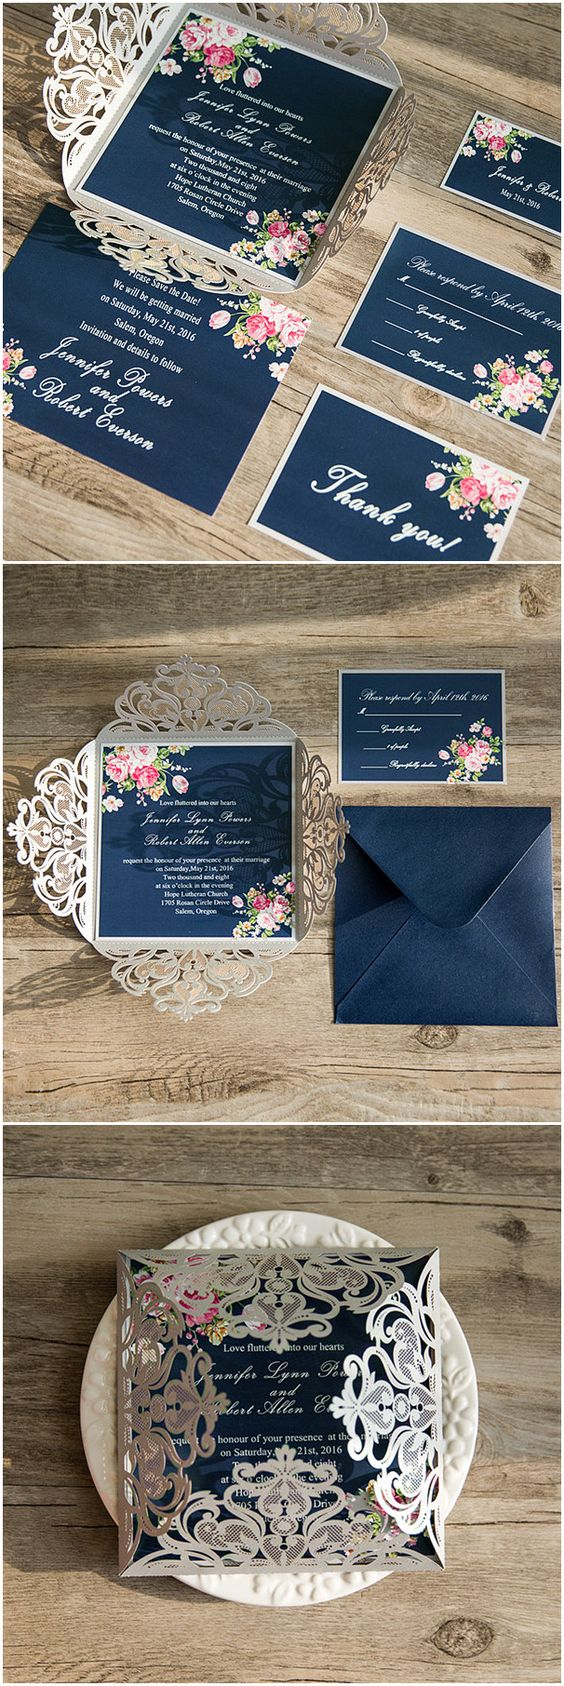 shabby chic navy blue and pink laser cut floral wedding invitations @elegantwinvites: